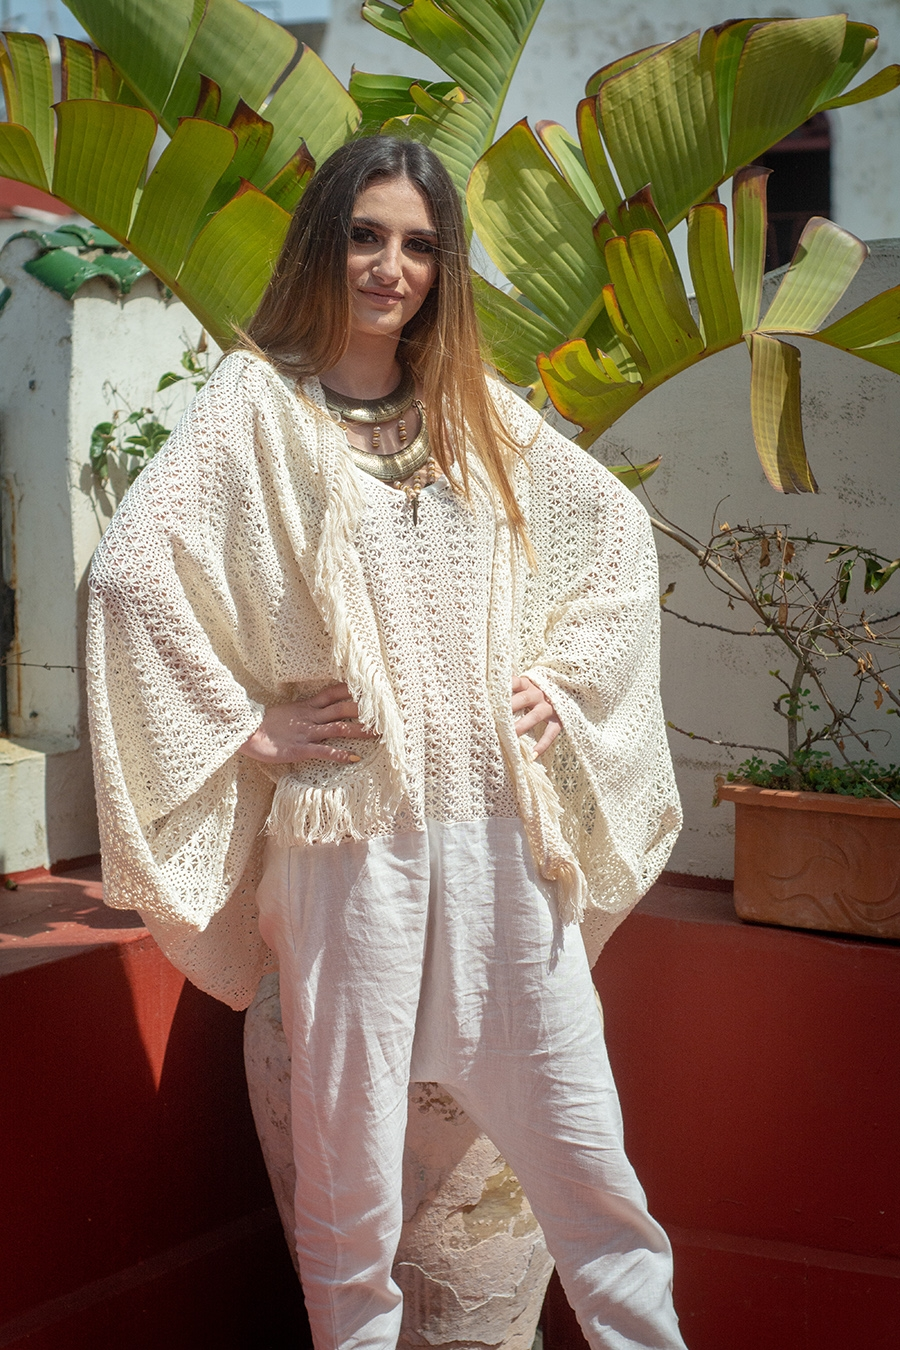 BOHO CHIC – TENDANCE UNIQUE – GILET COURT OVERSIZE EN CROCHET – ETE 19 – SUMMER 19 – MONACO